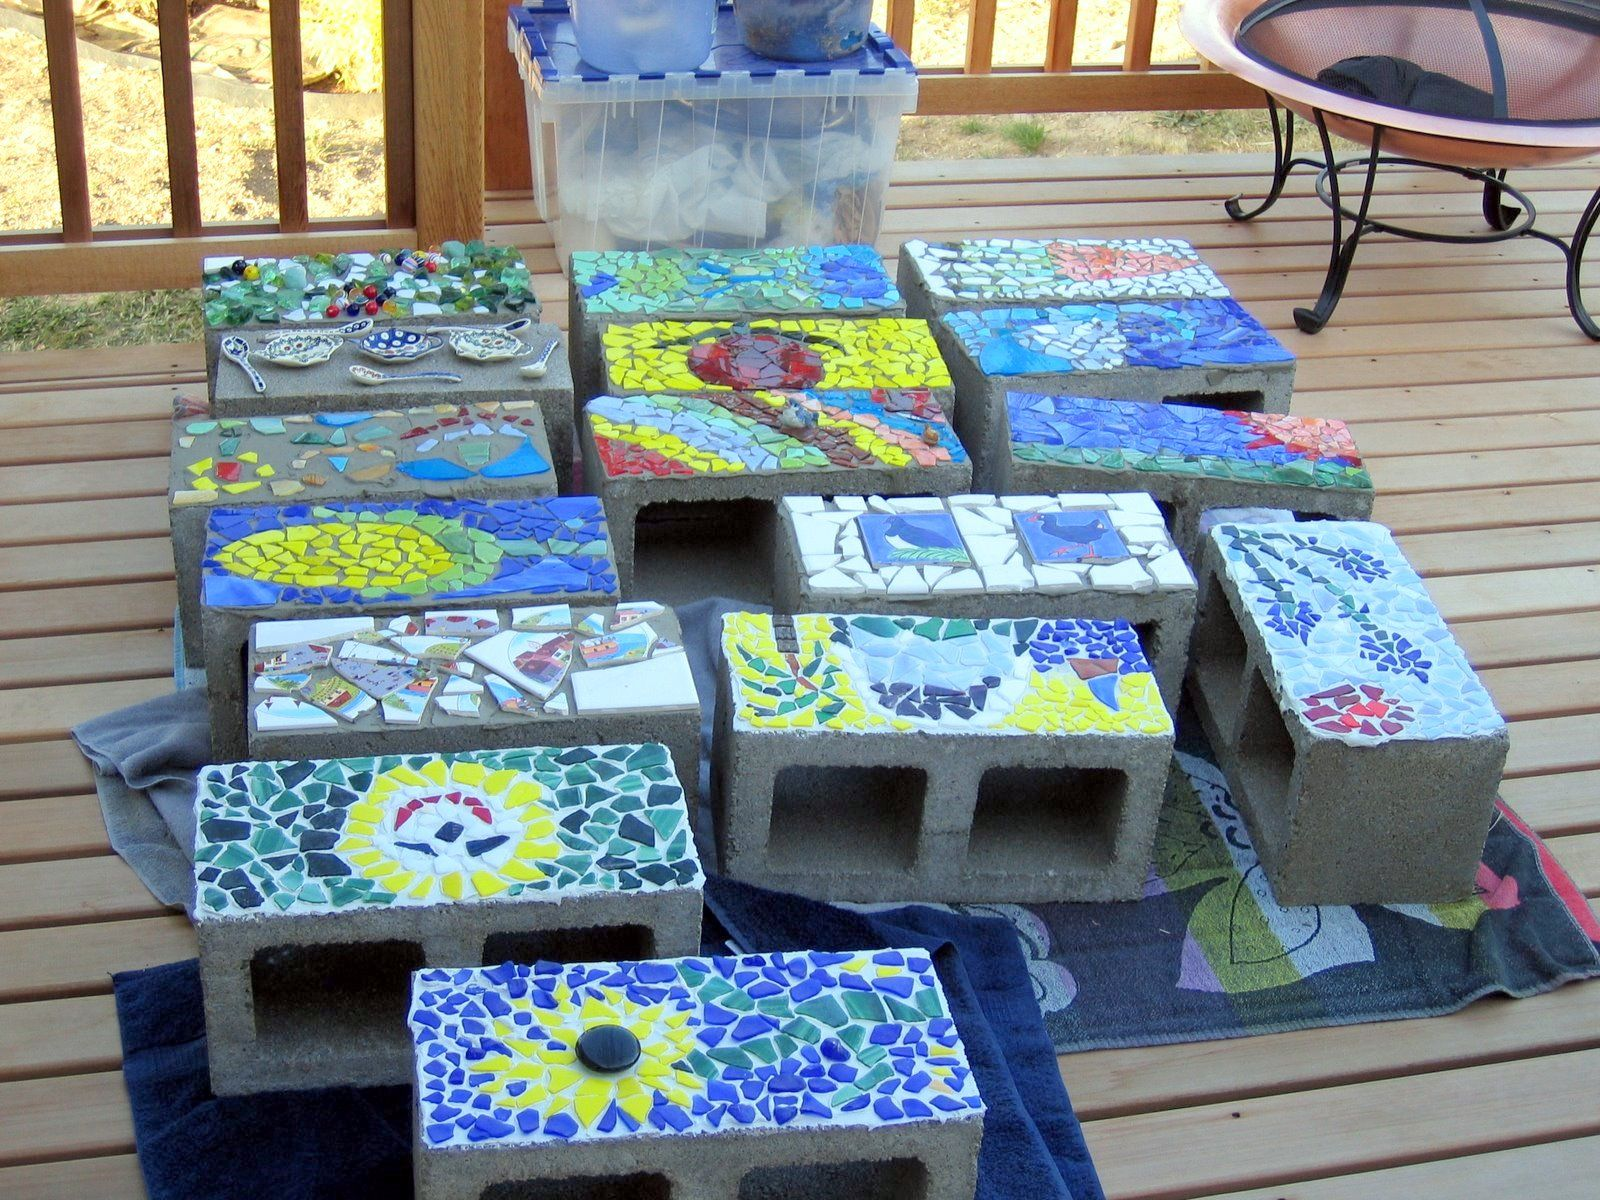 15 Garden Mosaic Projects in 2018 | Awesome Garden Ideas | Pinterest ...